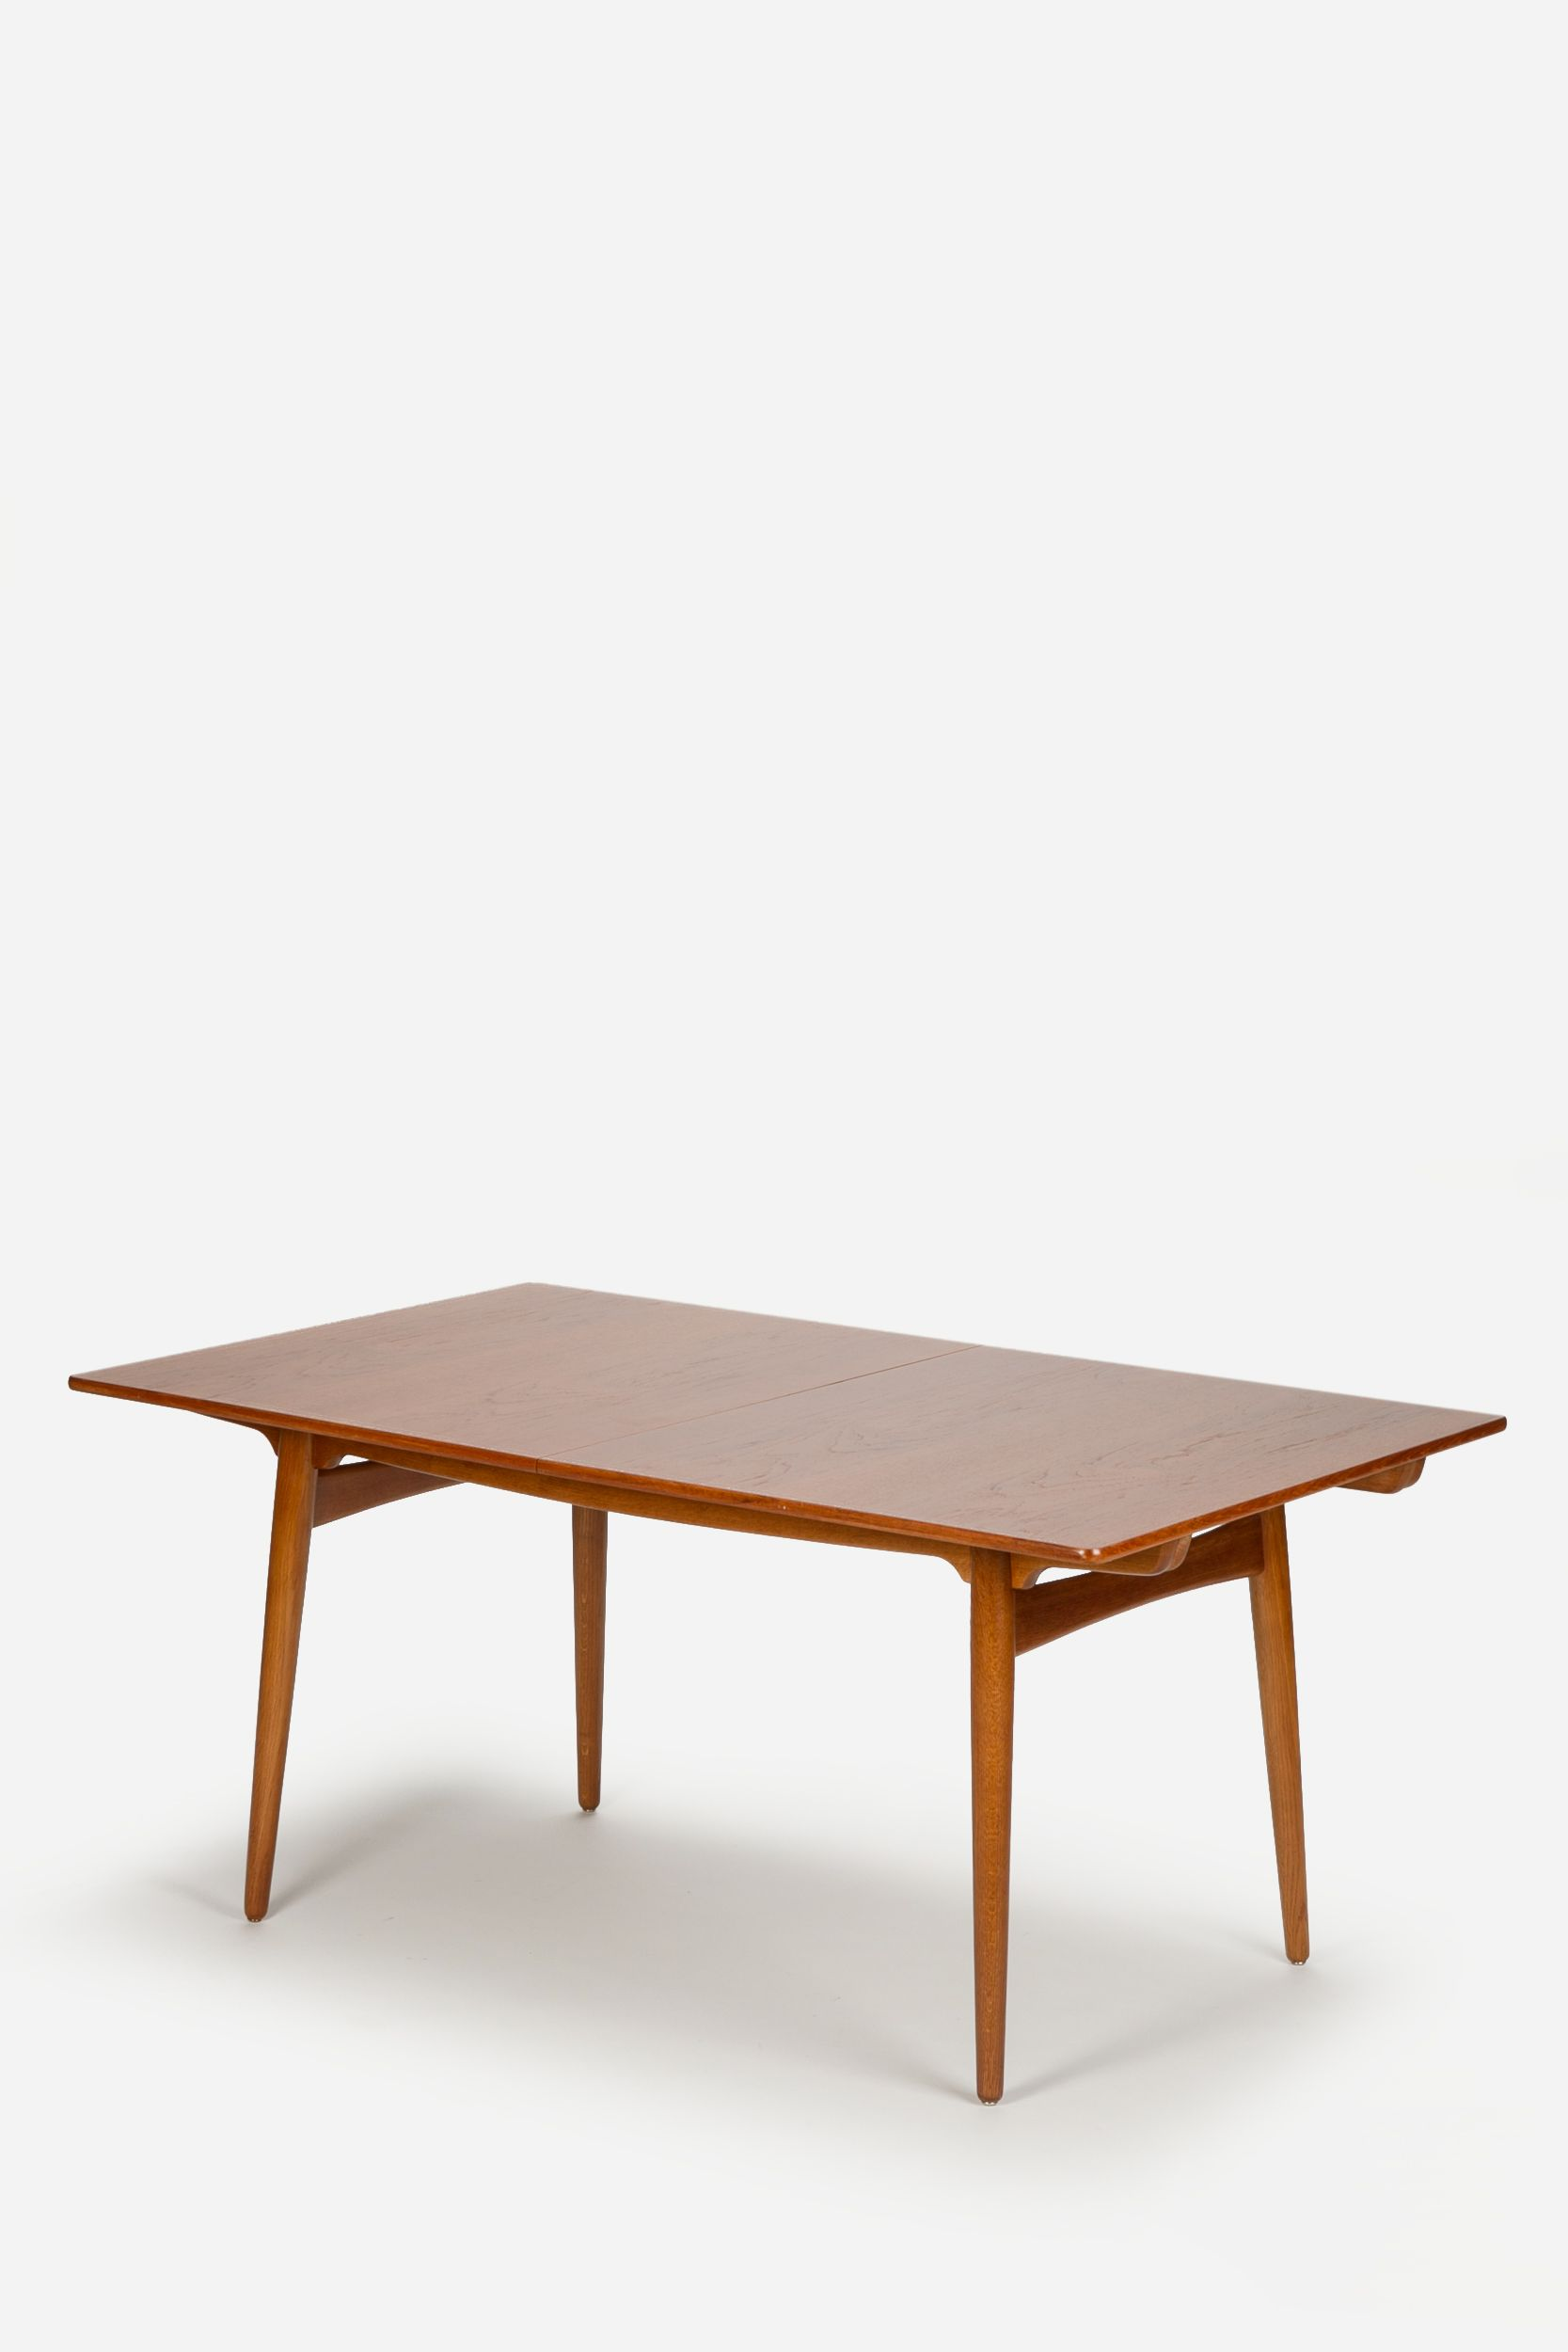 hans wegner esstisch teak eiche ausziehbar tables pinterest hans wegner teak and mid. Black Bedroom Furniture Sets. Home Design Ideas